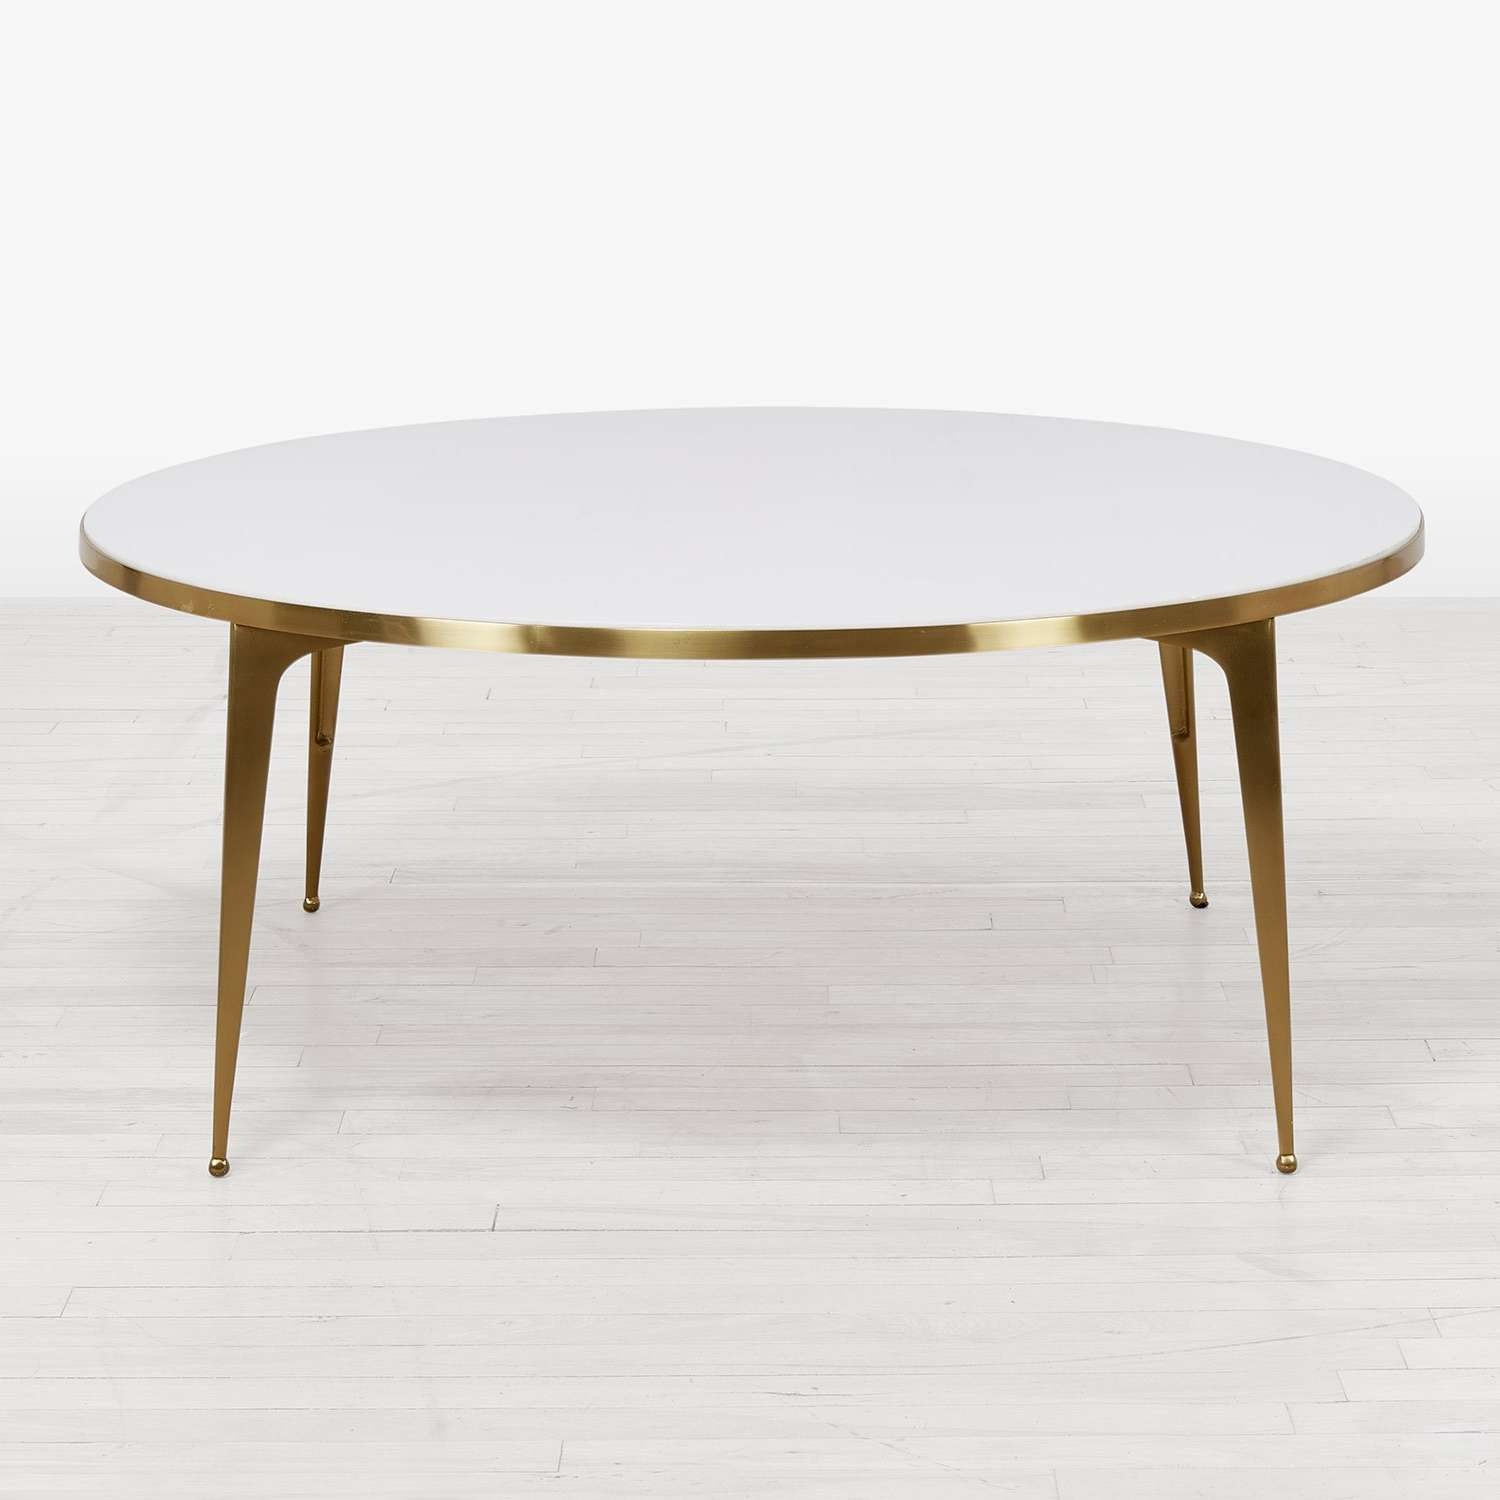 2017 Marble Round Coffee Tables Pertaining To Coffee Tables : Mirrored Coffee Table Grey Marble Round Brass Sets (View 4 of 20)